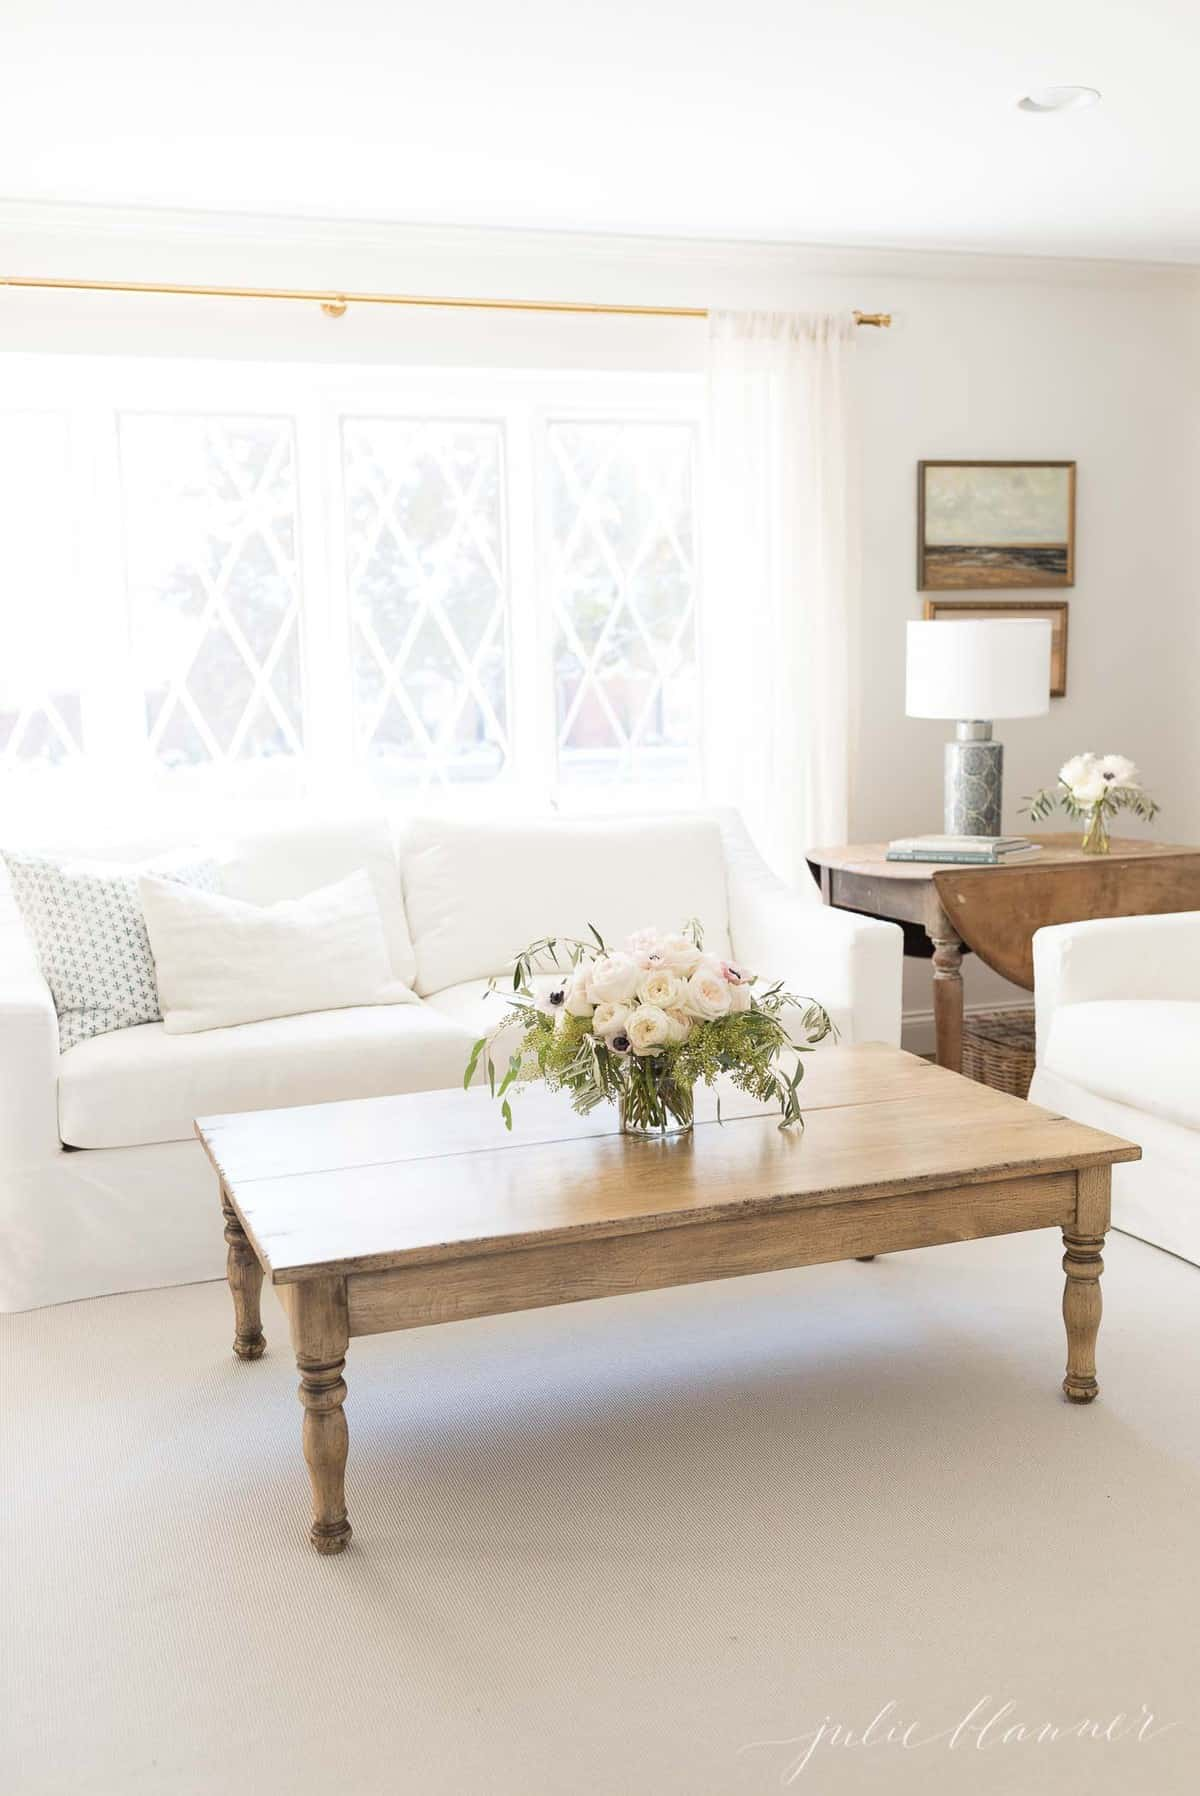 A white living room featuring white sofas, a cream carpet and a wooden coffee table.